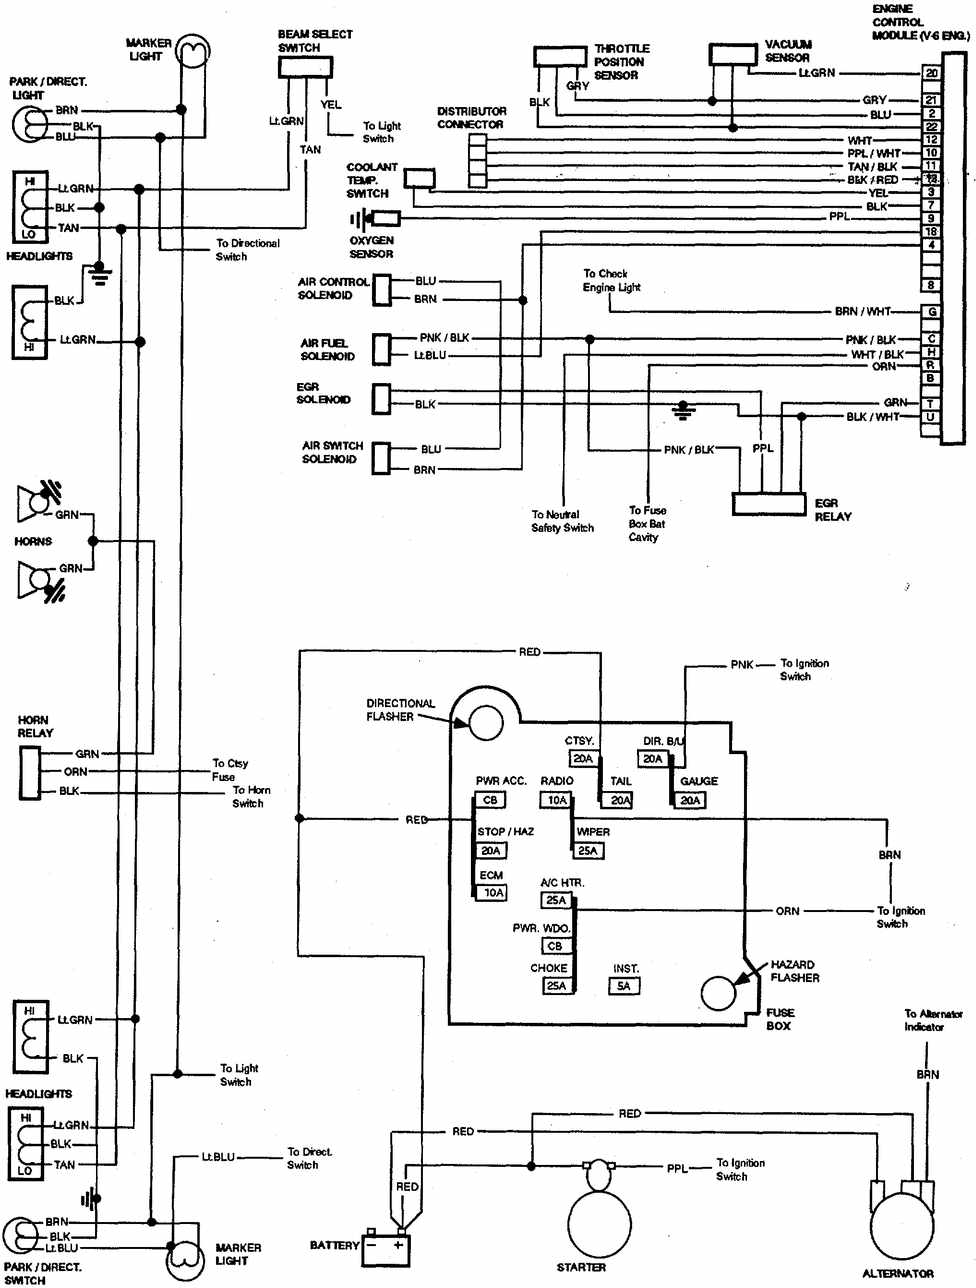 chevrolet v8 trucks 1981-1987 electrical wiring diagram ... 1987 chevy truck fuel pump wiring diagram free picture